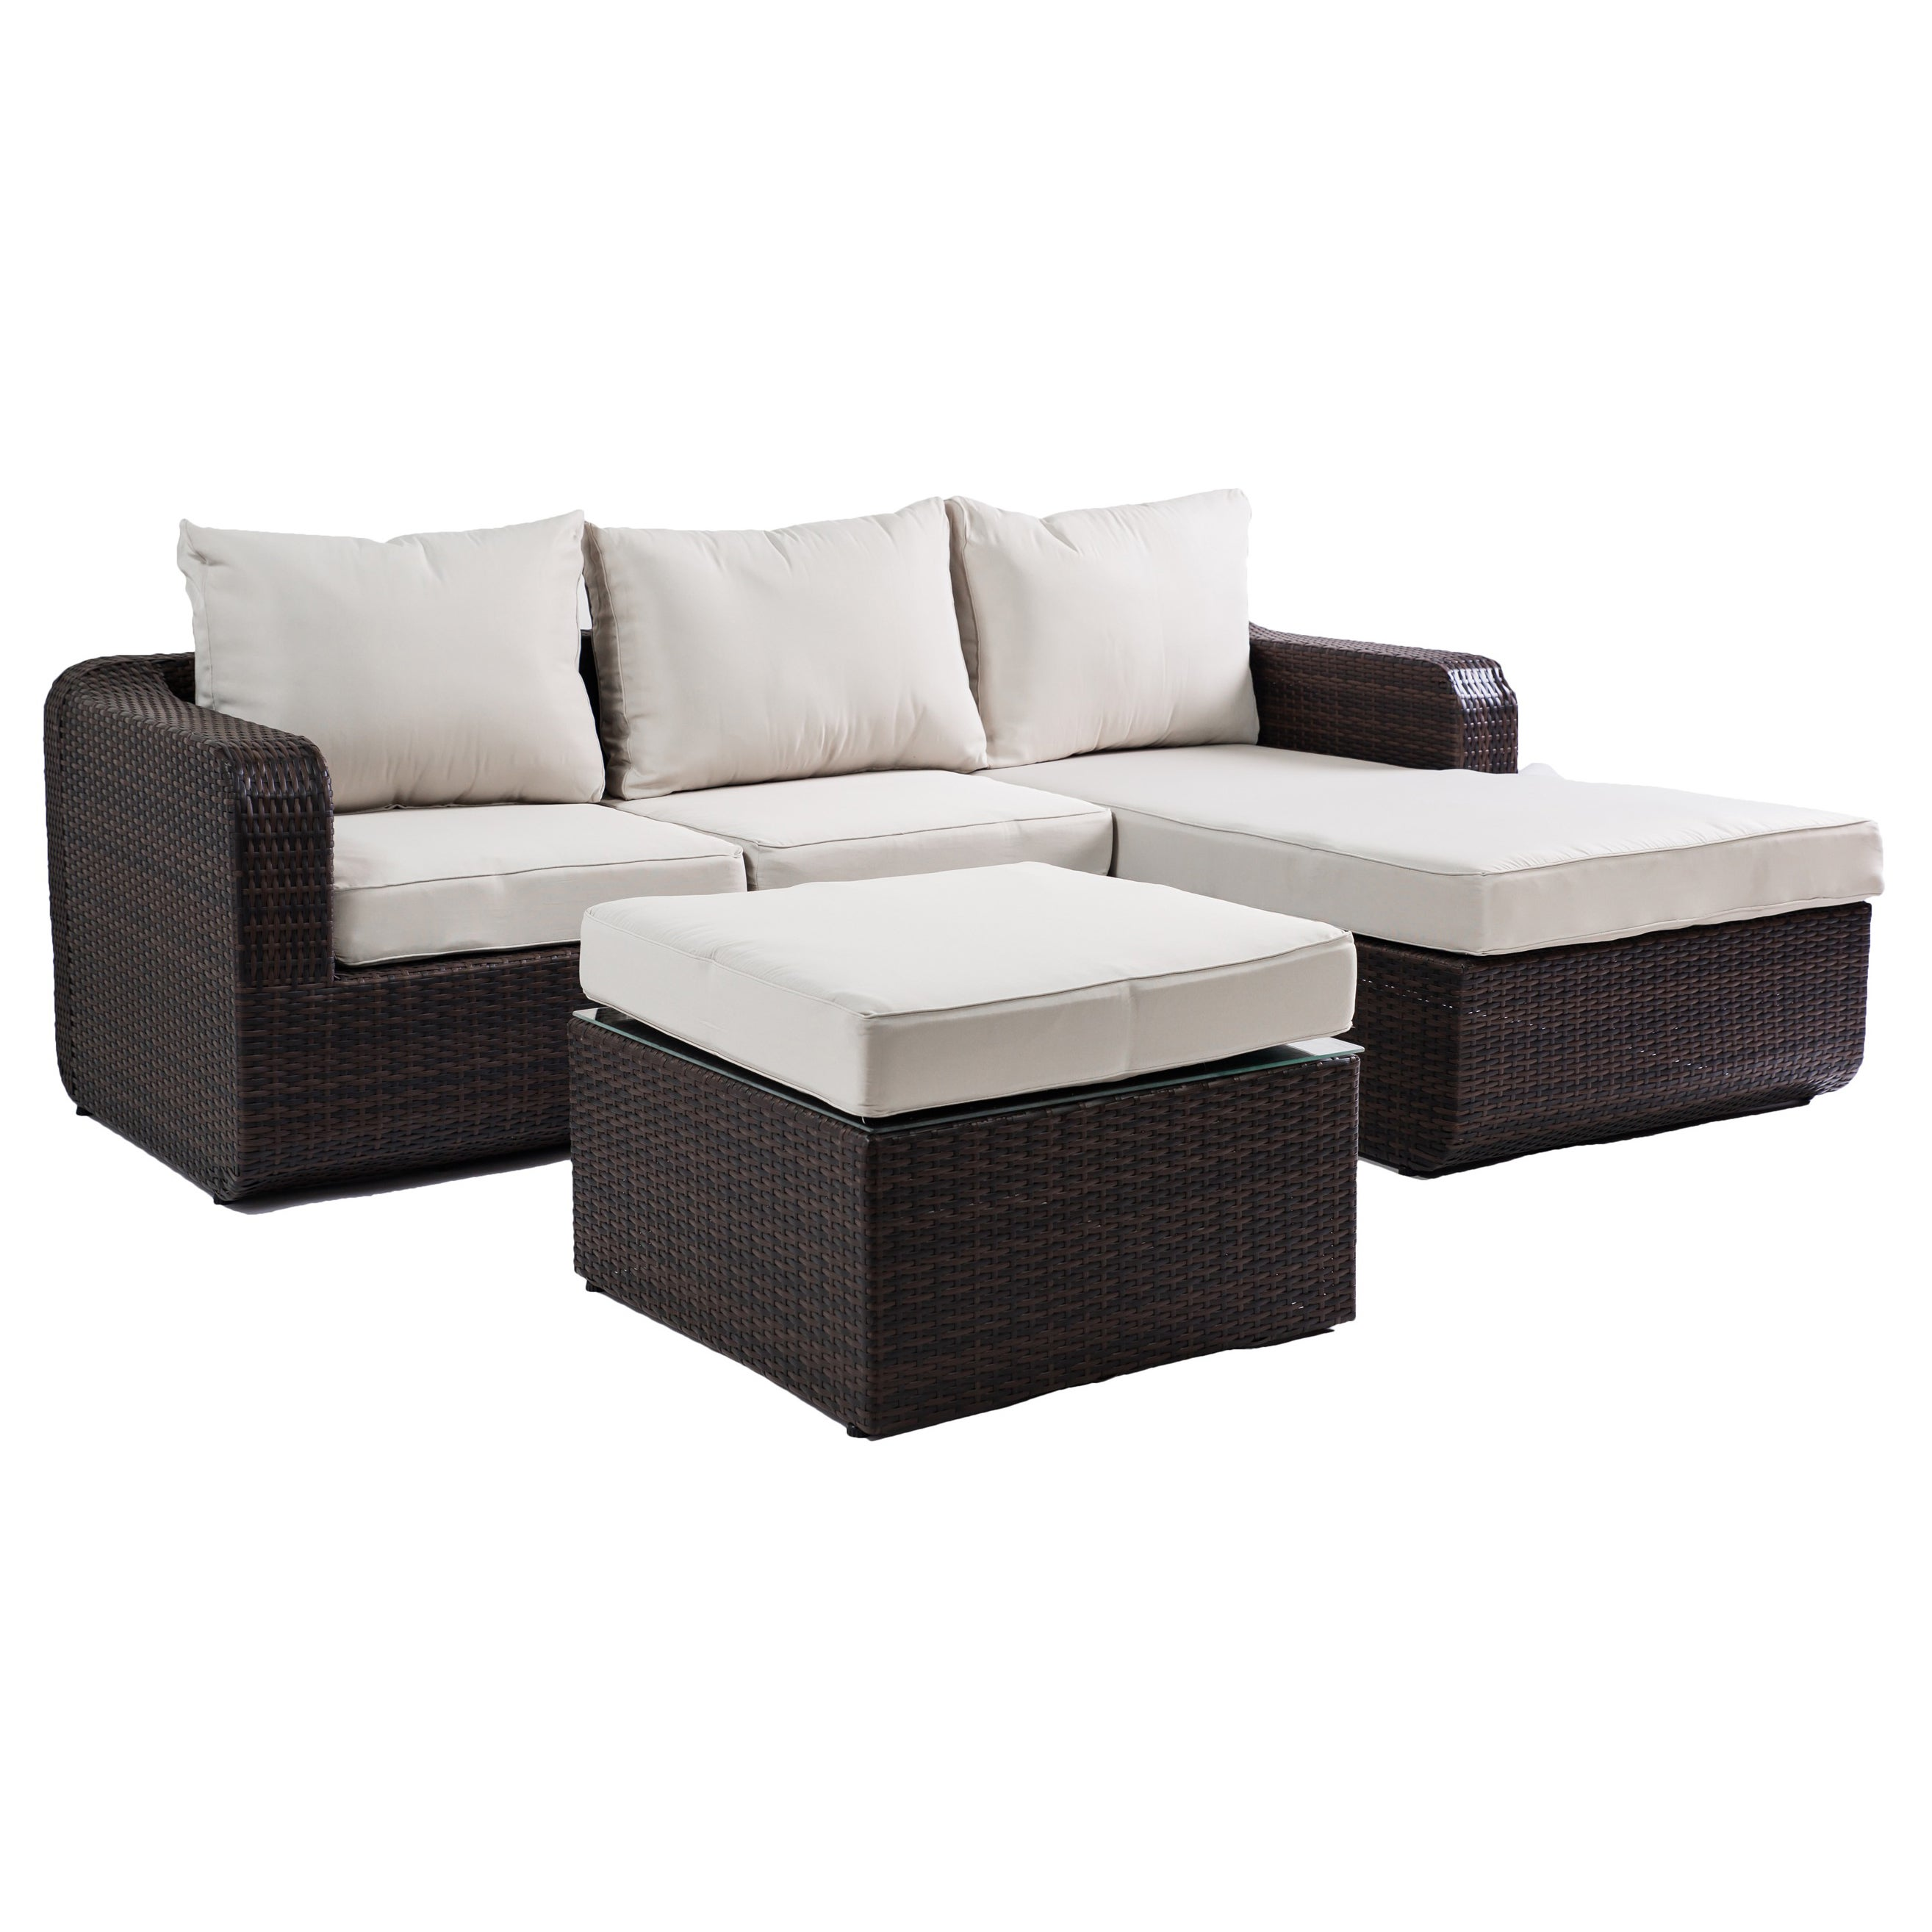 the Hom Luies 3 piece All weather Wicker Patio Conversation Set